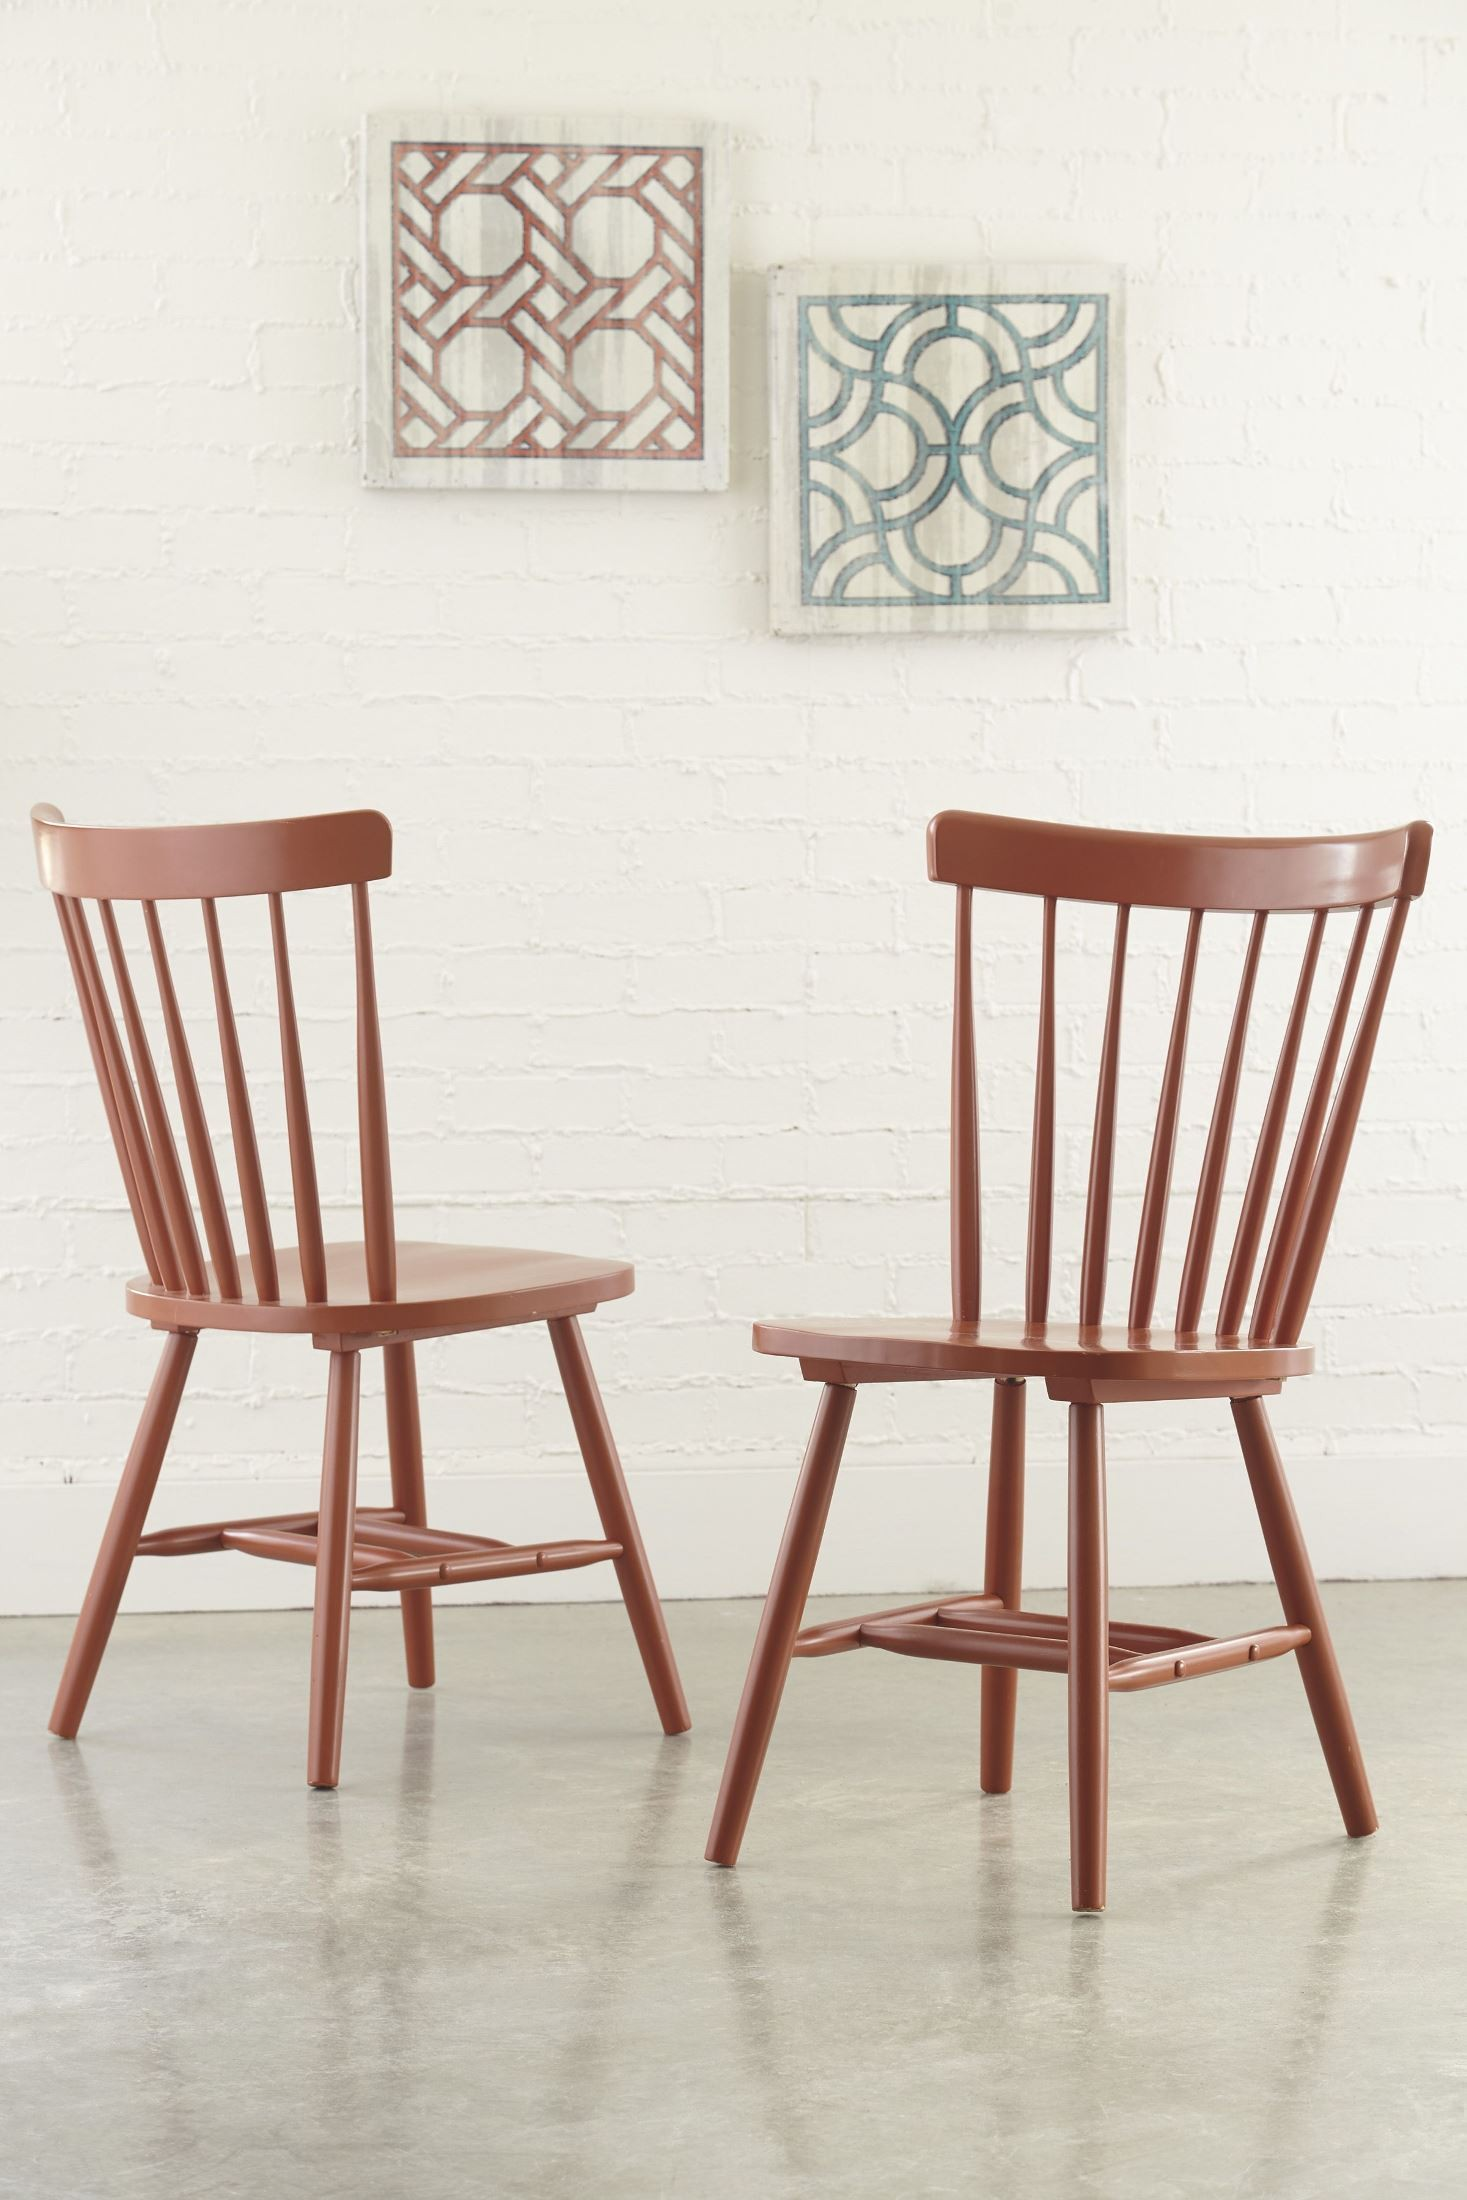 Bantilly Orange Dining Room Chair Set 2 from Ashley